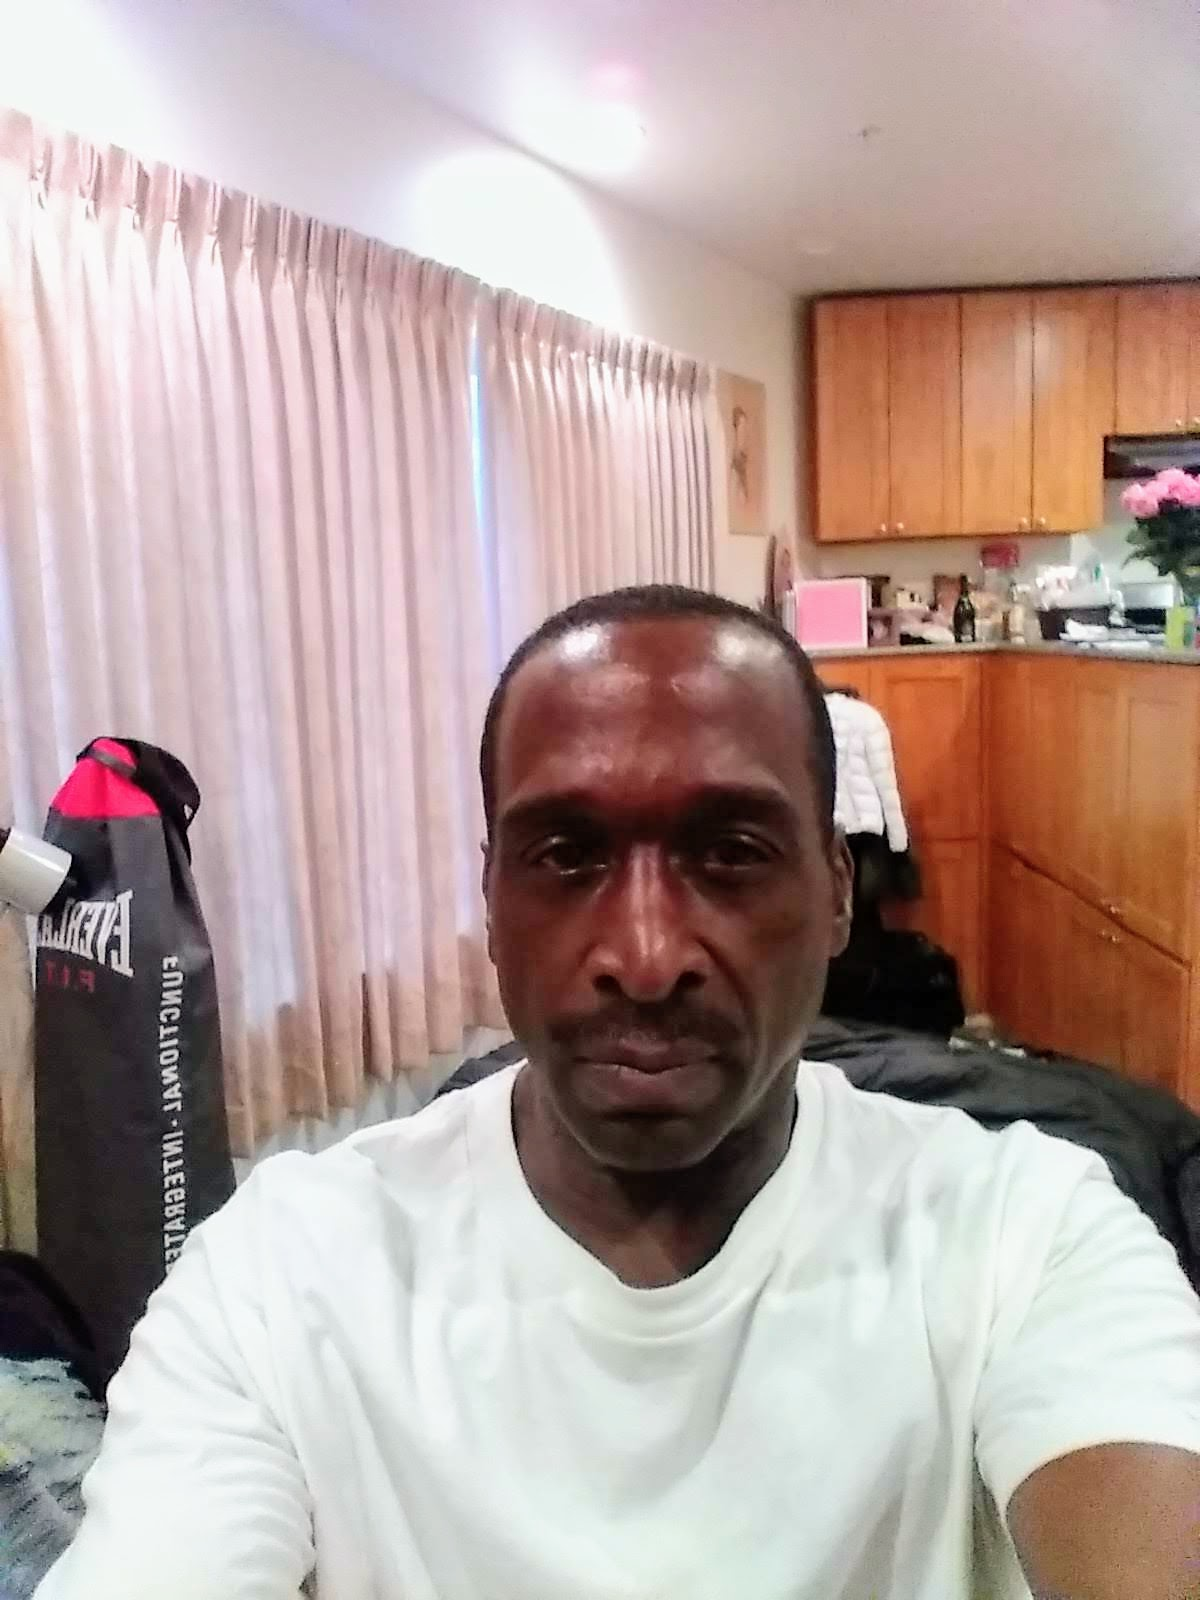 Selfie of a man in a white shirt in a room with bright curtains and wood cabinets in the background.